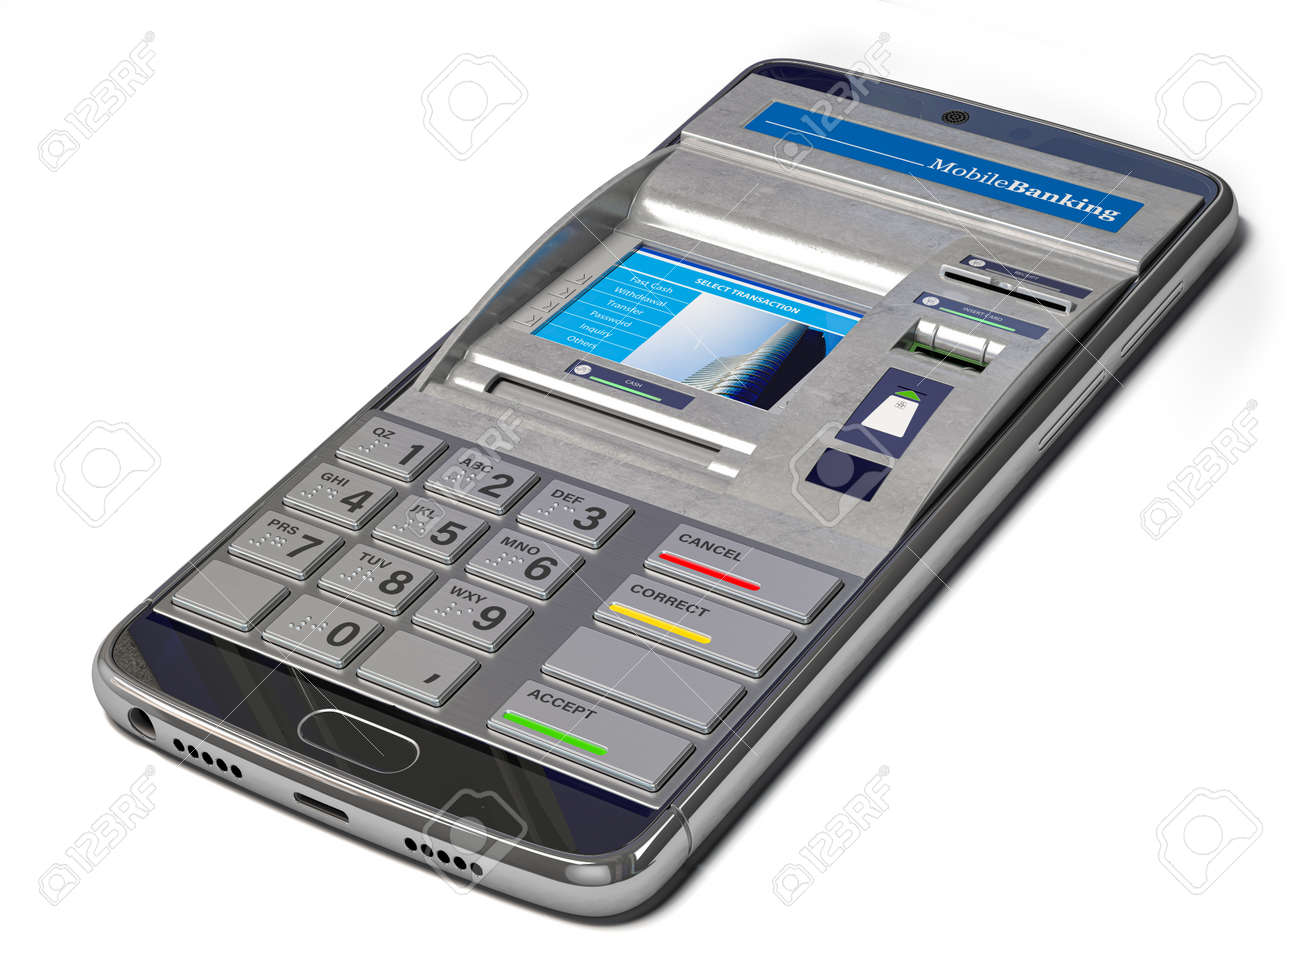 Mobile banking, online payments and digital financial services concept. Smartphone with ATM on screen. 3d illustration - 158690759